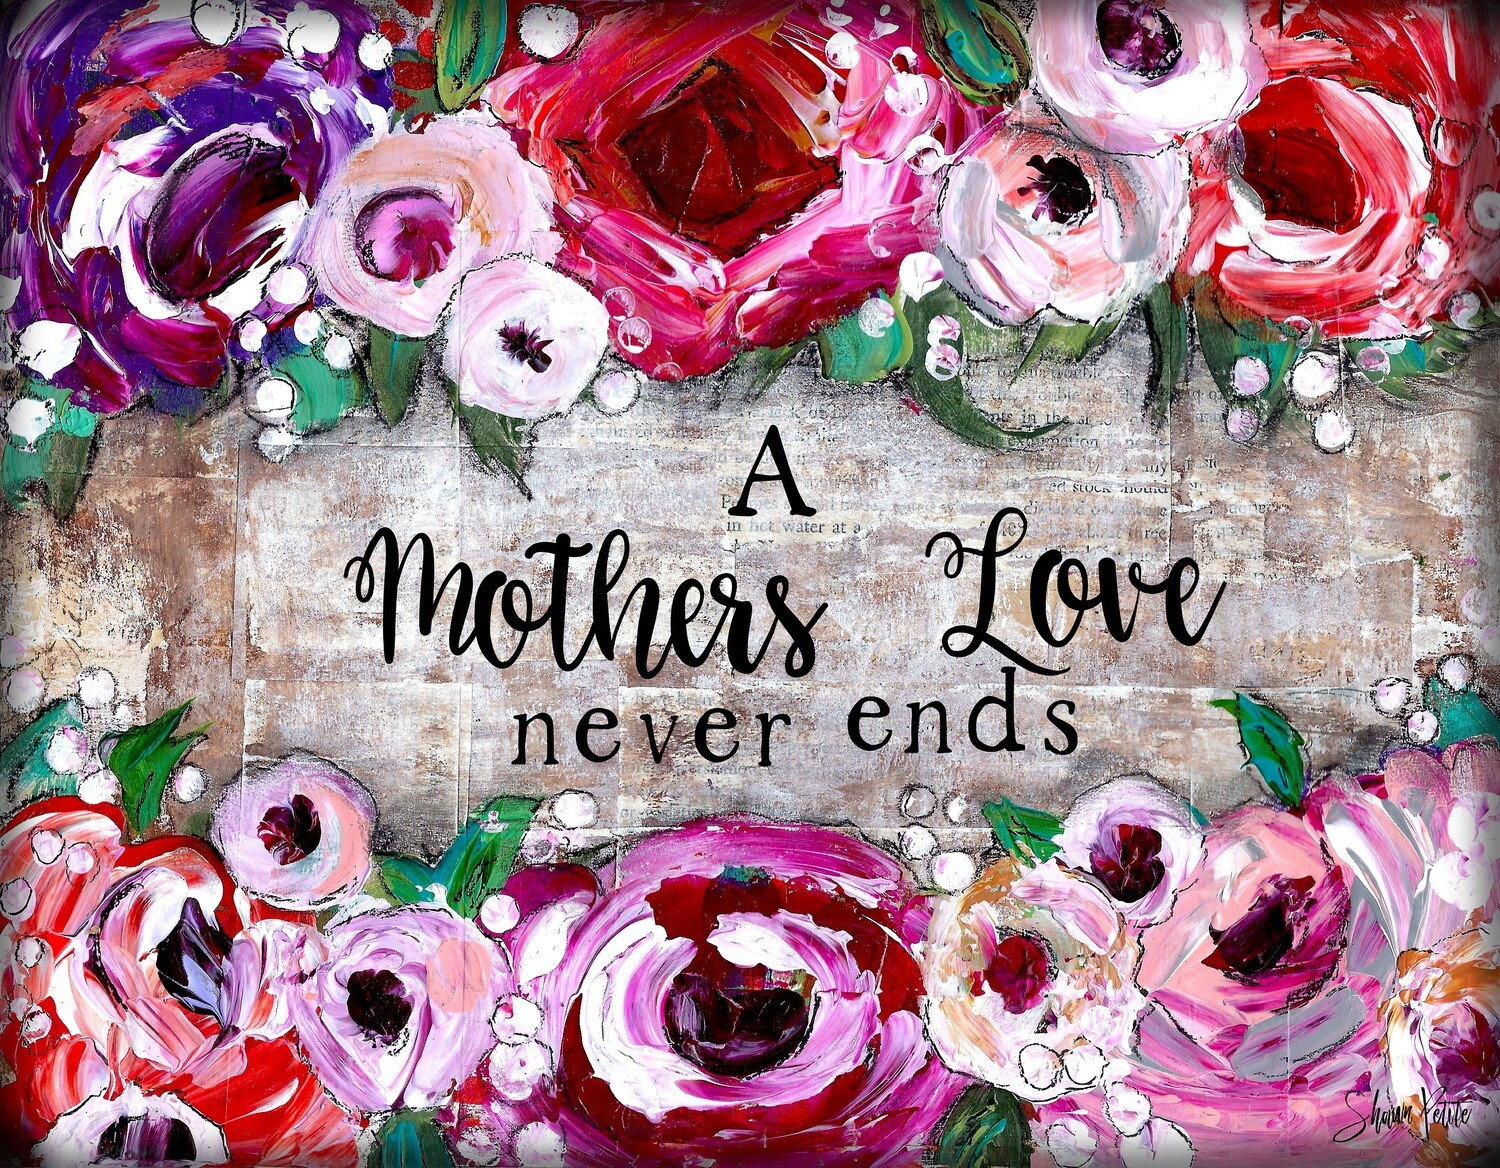 """A Mothers love never ends"" Print on Wood 6x4 Overstock"